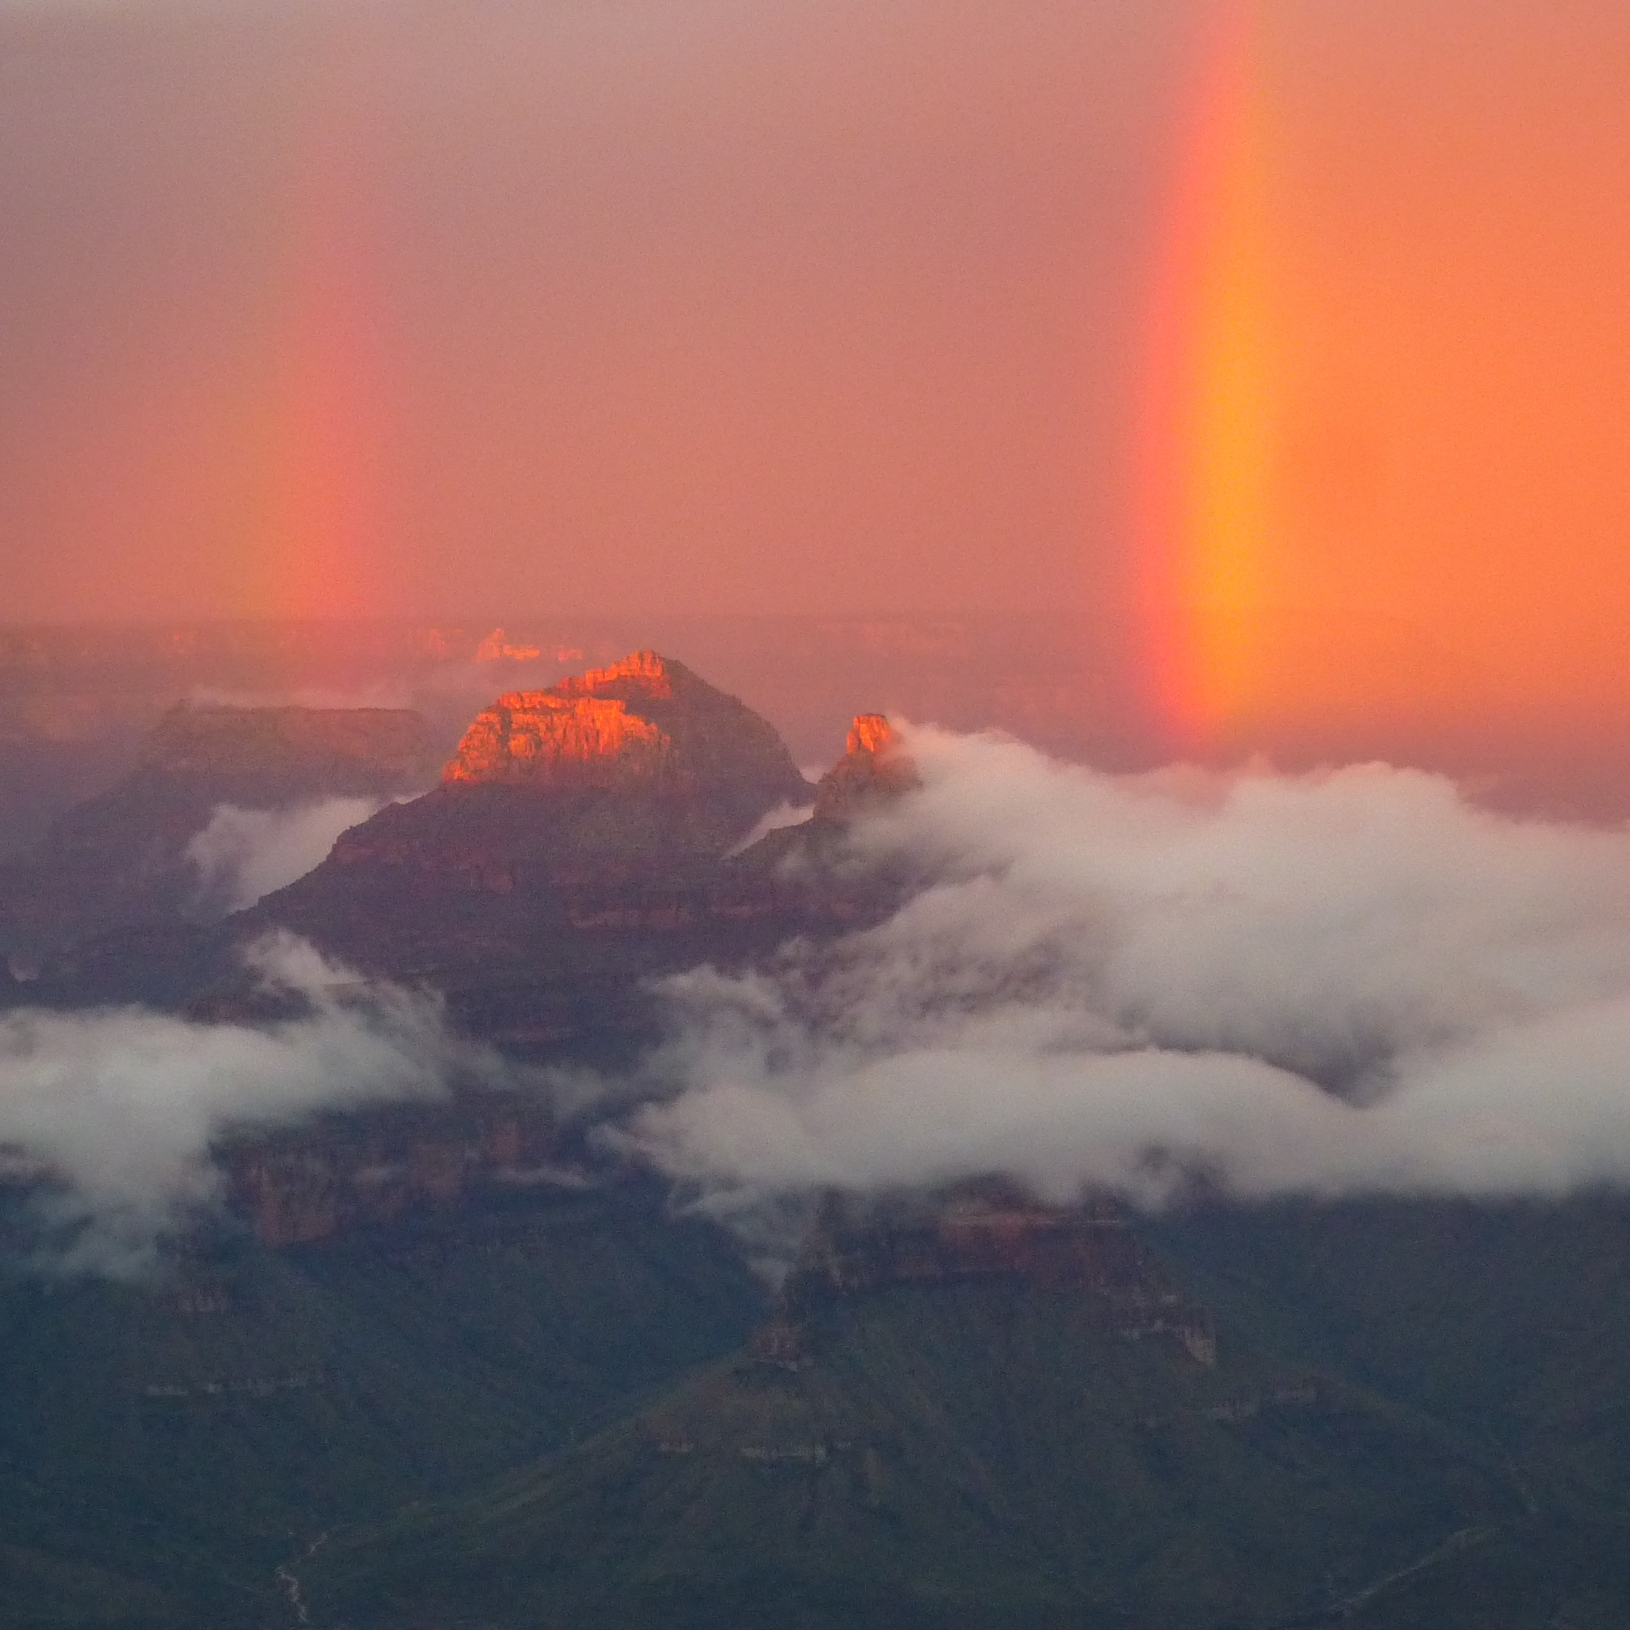 After thunderstorm at the Grand Canyon